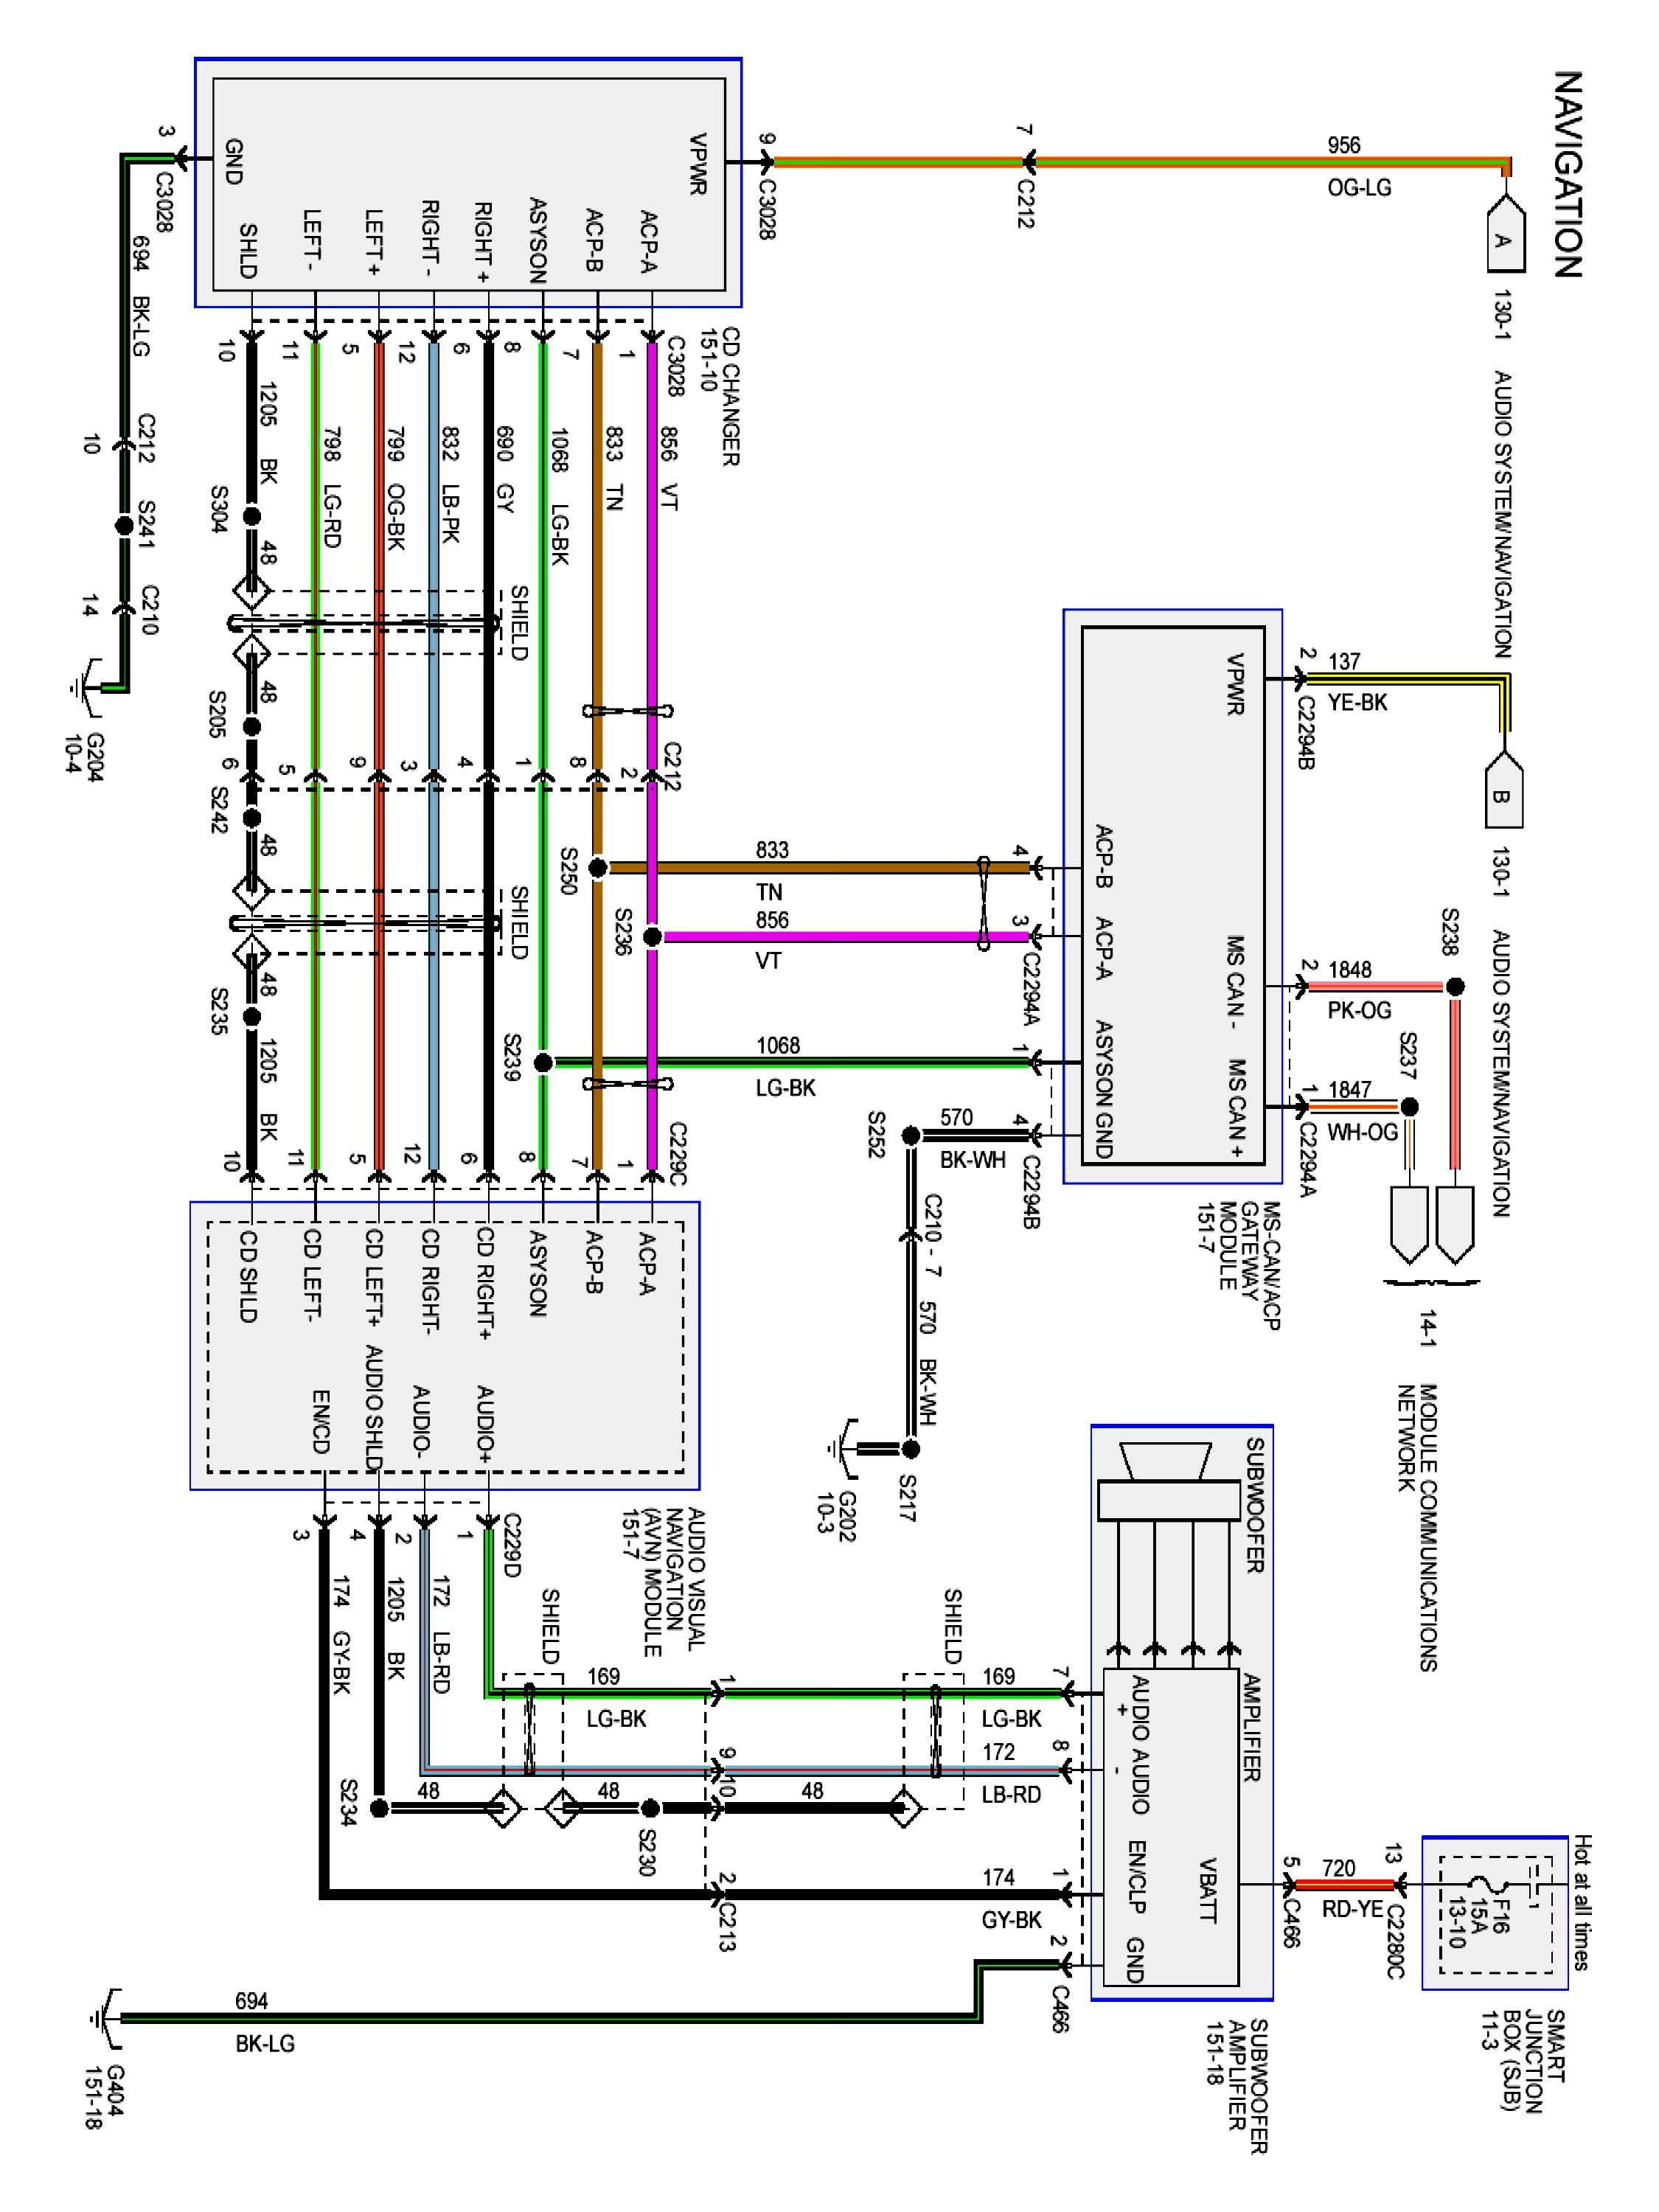 1999 Ford V1 0 F53 Wiring | Manual E-Books - Ford F53 Motorhome Chassis Wiring Diagram